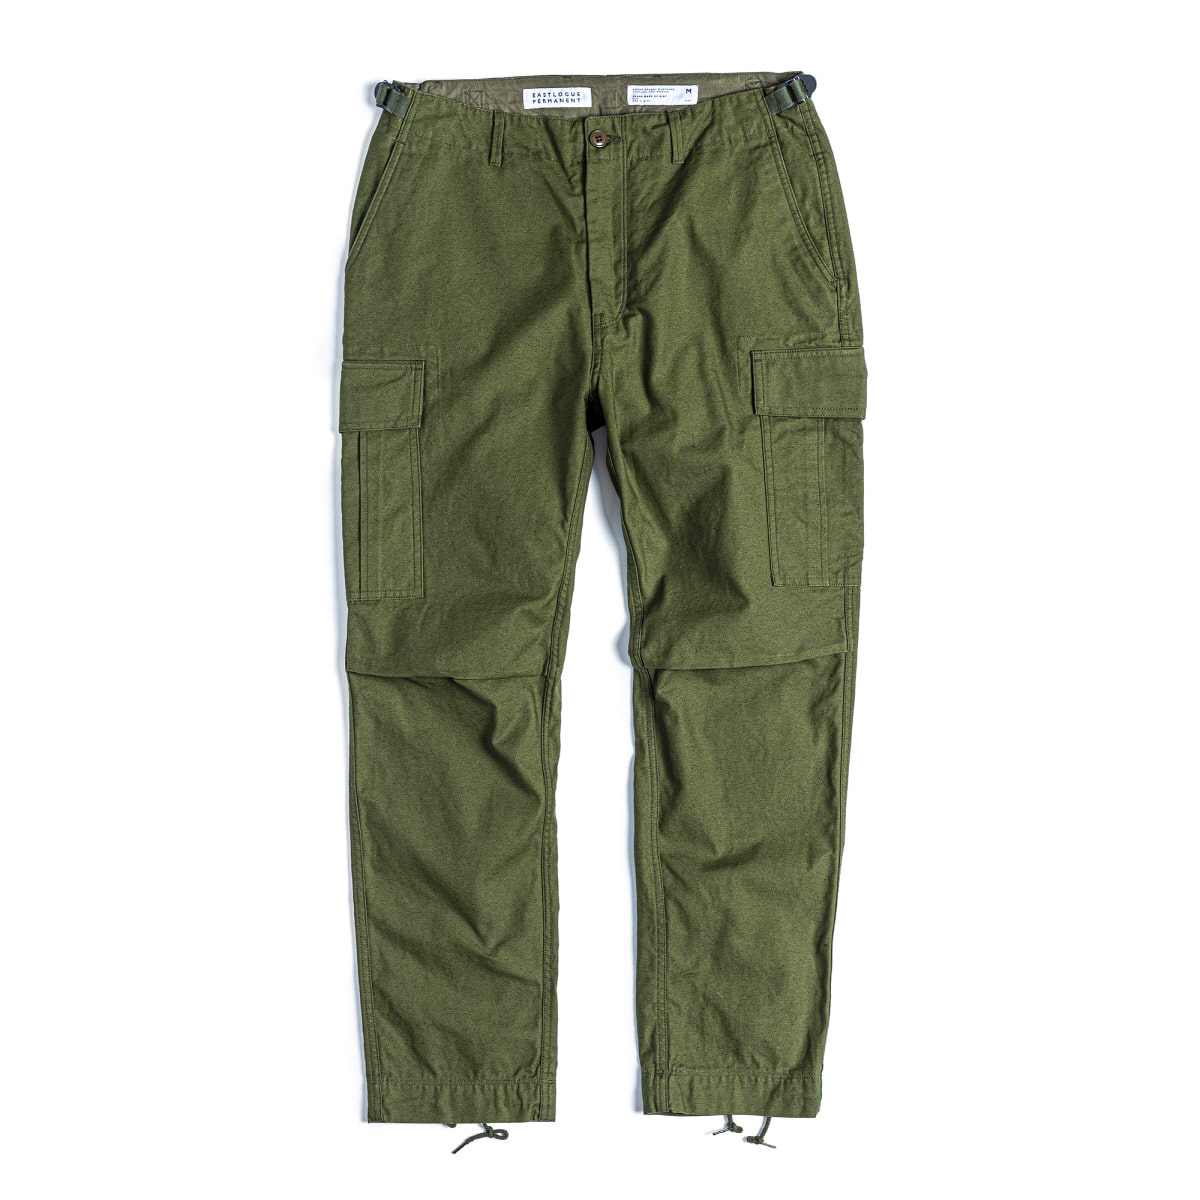 FIELD PANTS SLIM FIT - OLIVE BACK SATIN